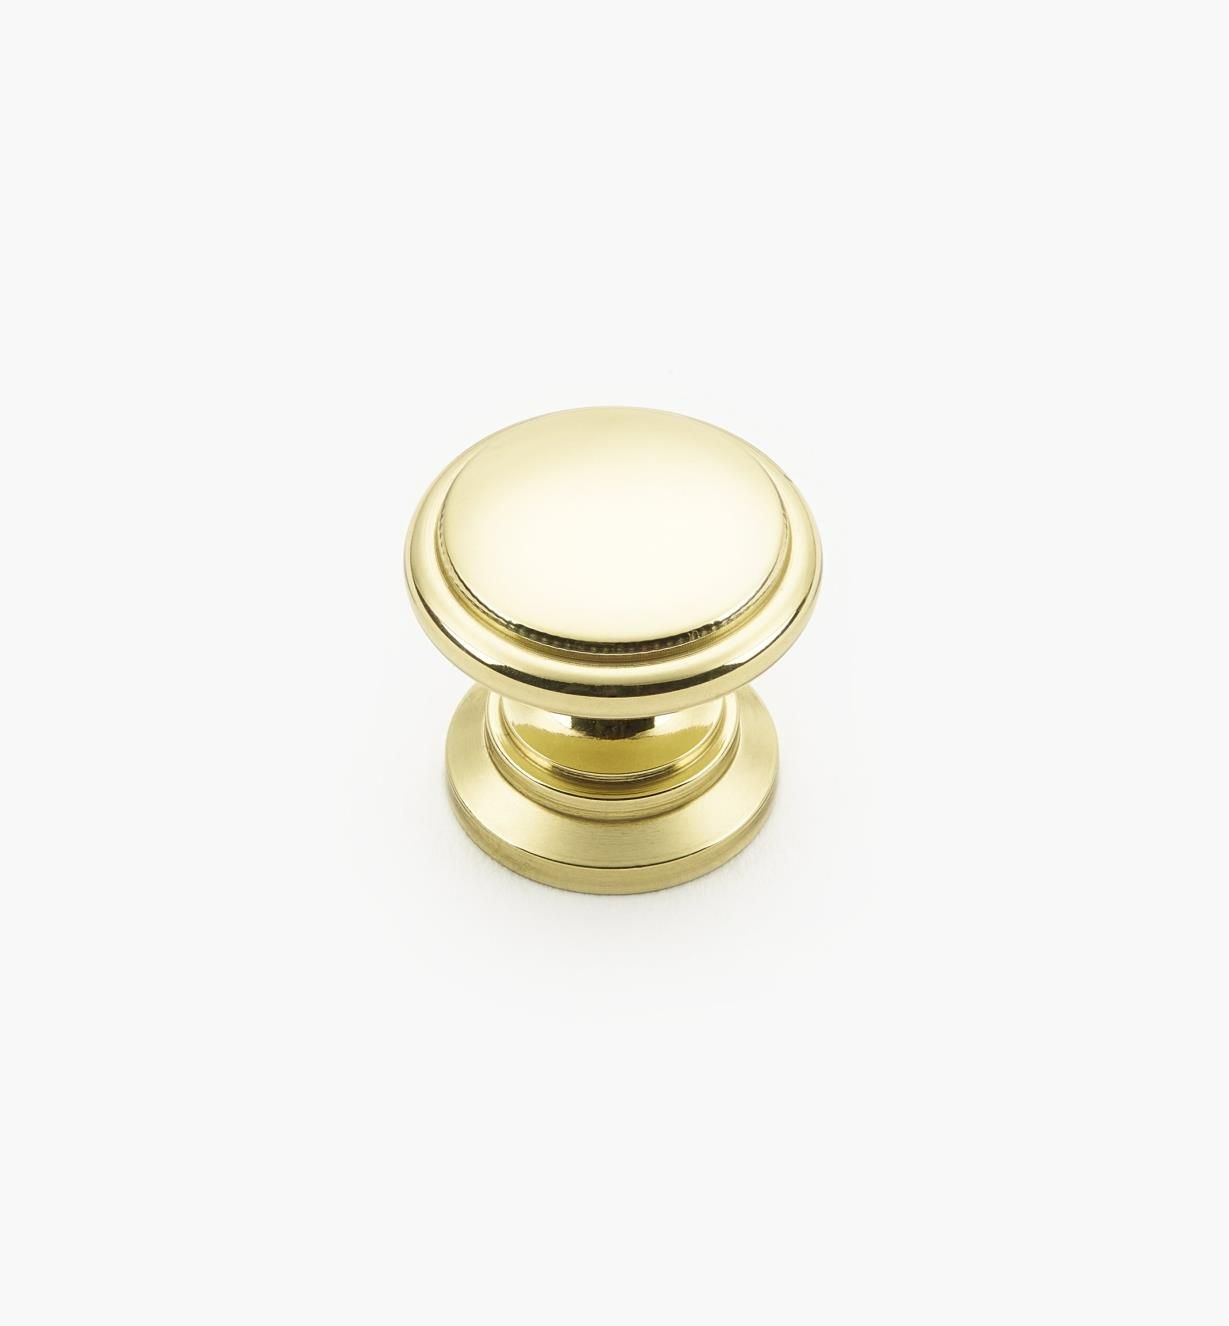 01W1343 - 25mm x 23mm Brass Knob